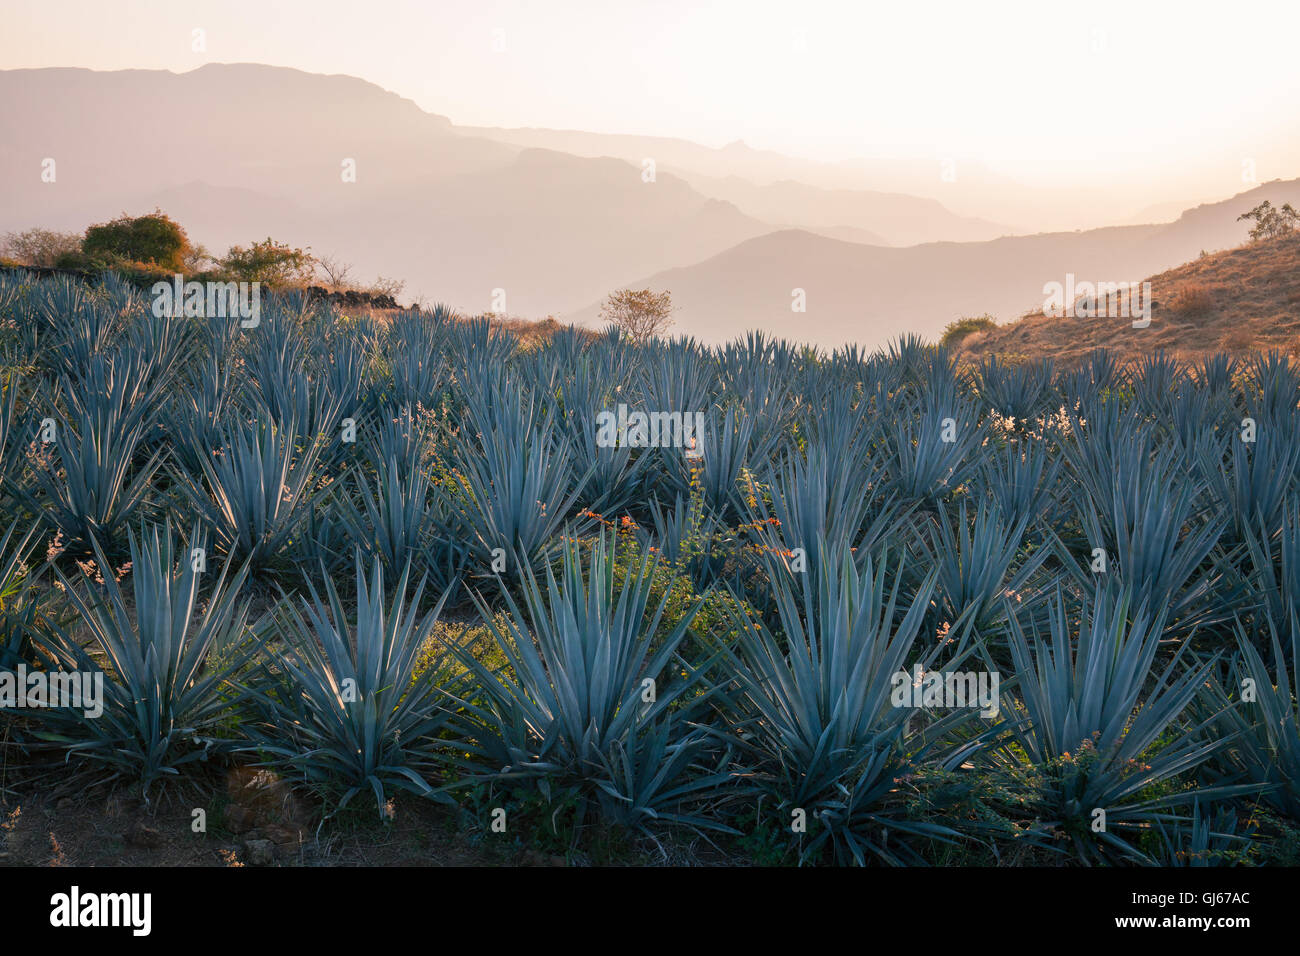 Blue agave fields near Tequila, Jalisco, Mexico. - Stock Image